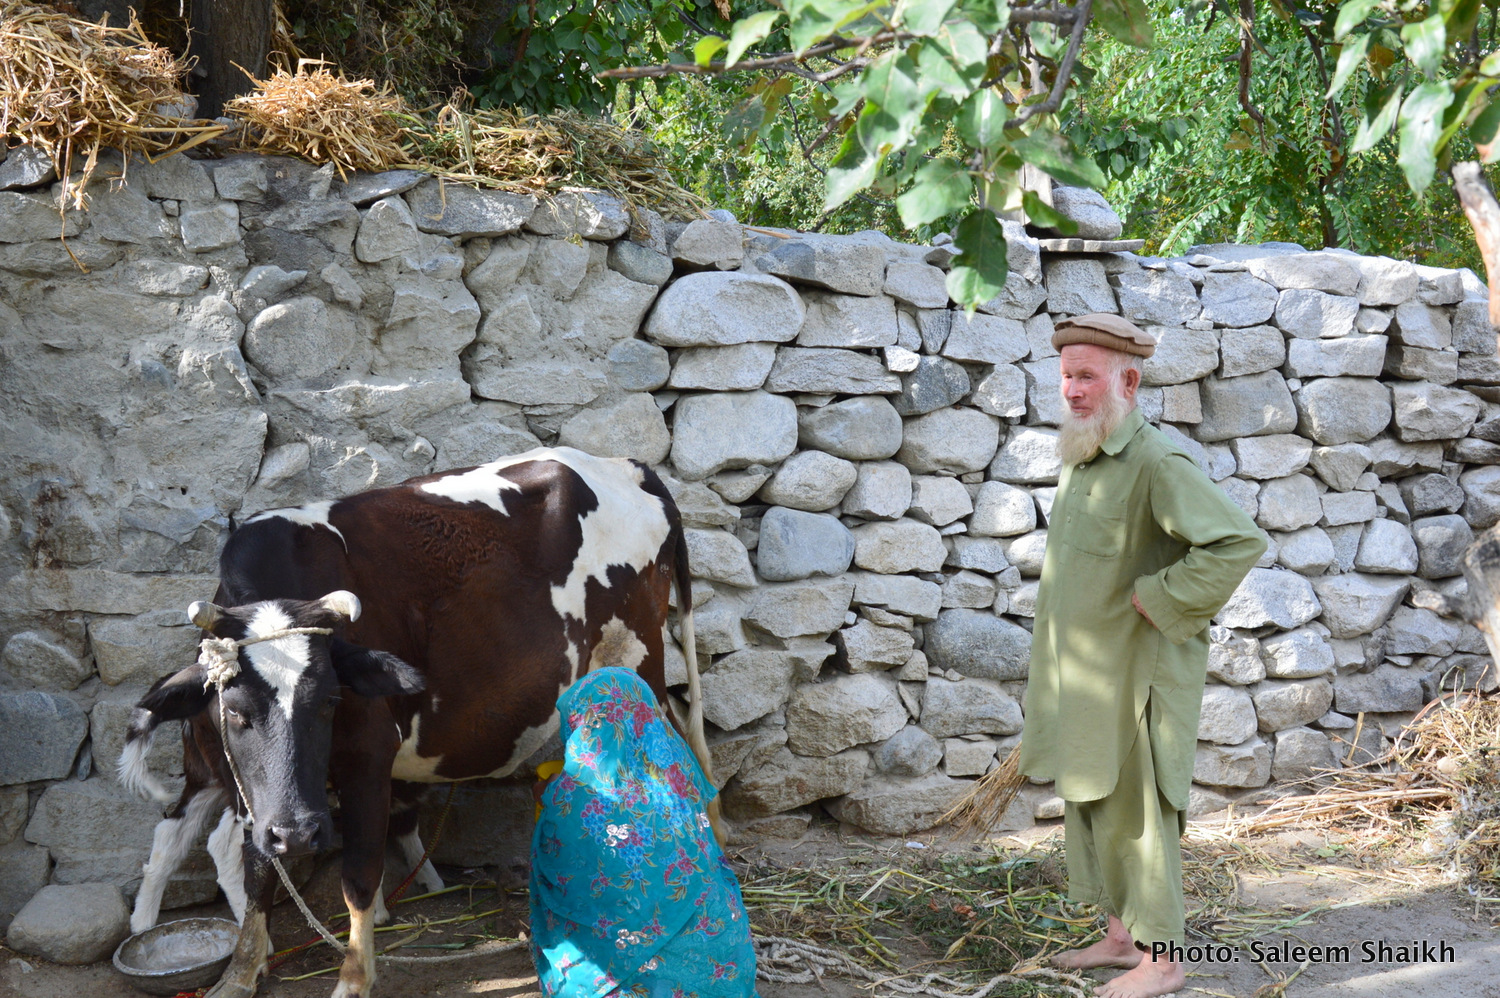 Frequent floods intensify migration, food security in Pakistan's mountainous north